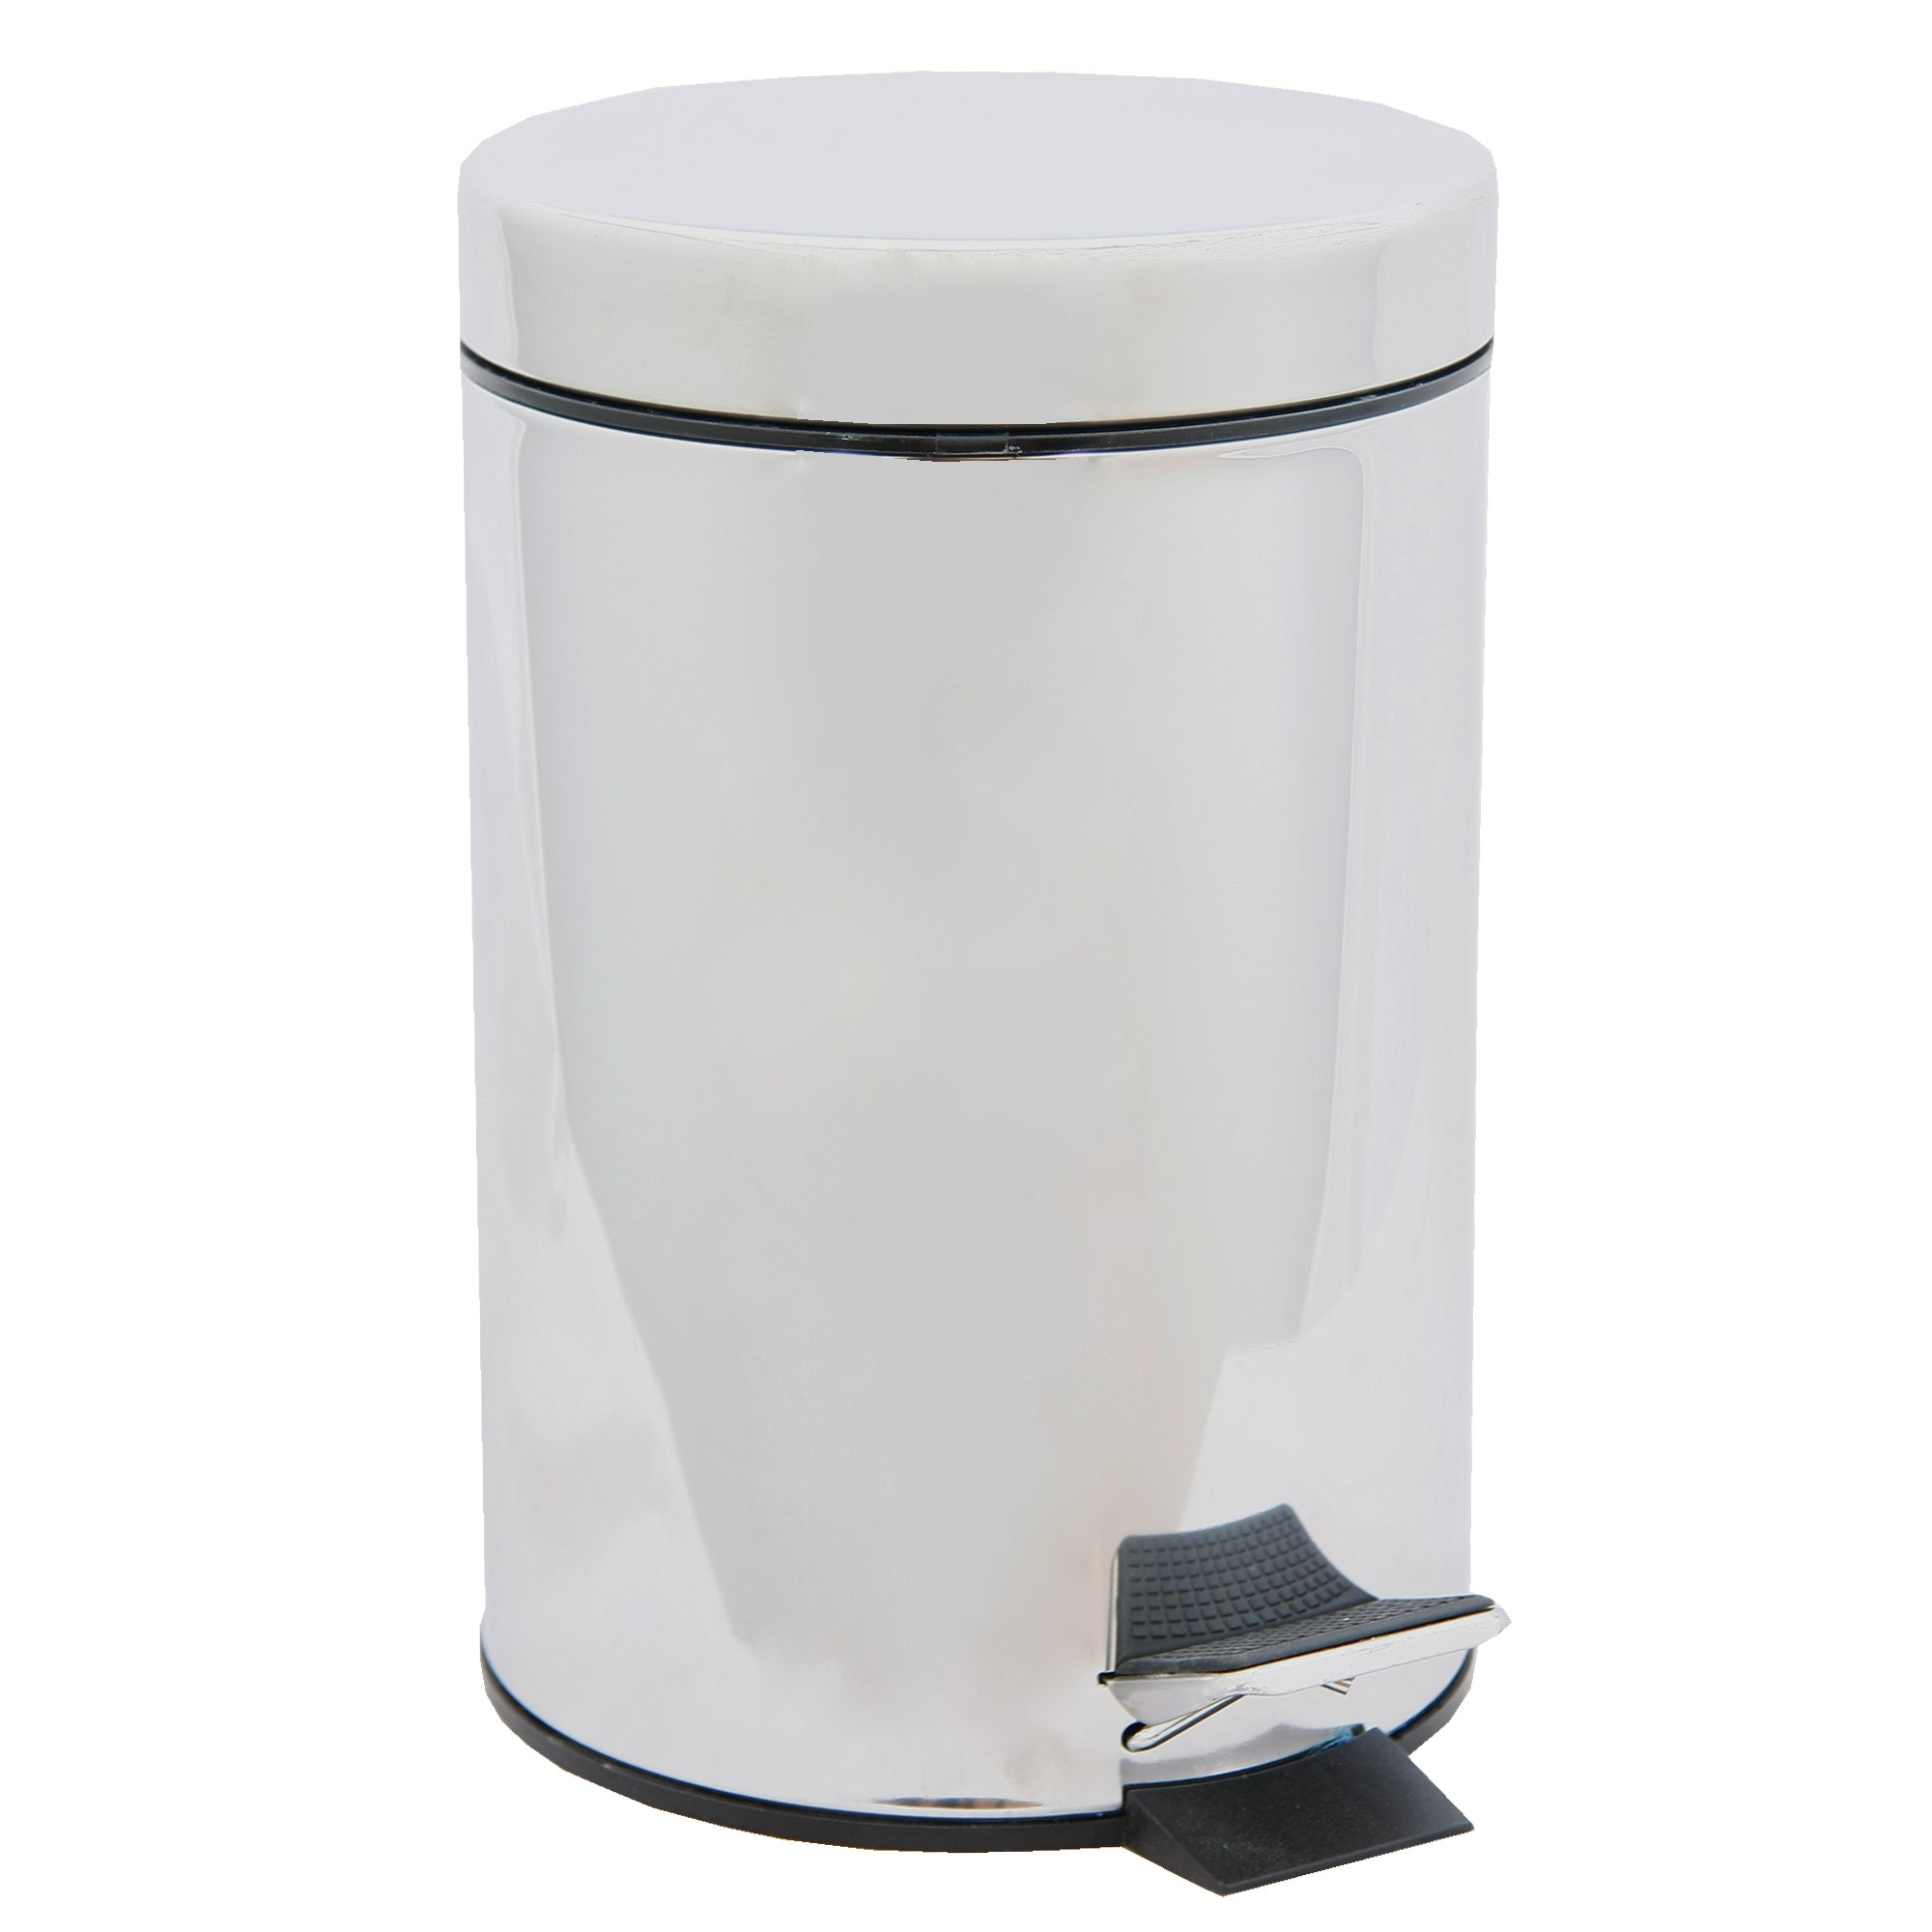 Bathroom Basics Collection Pedal Bin